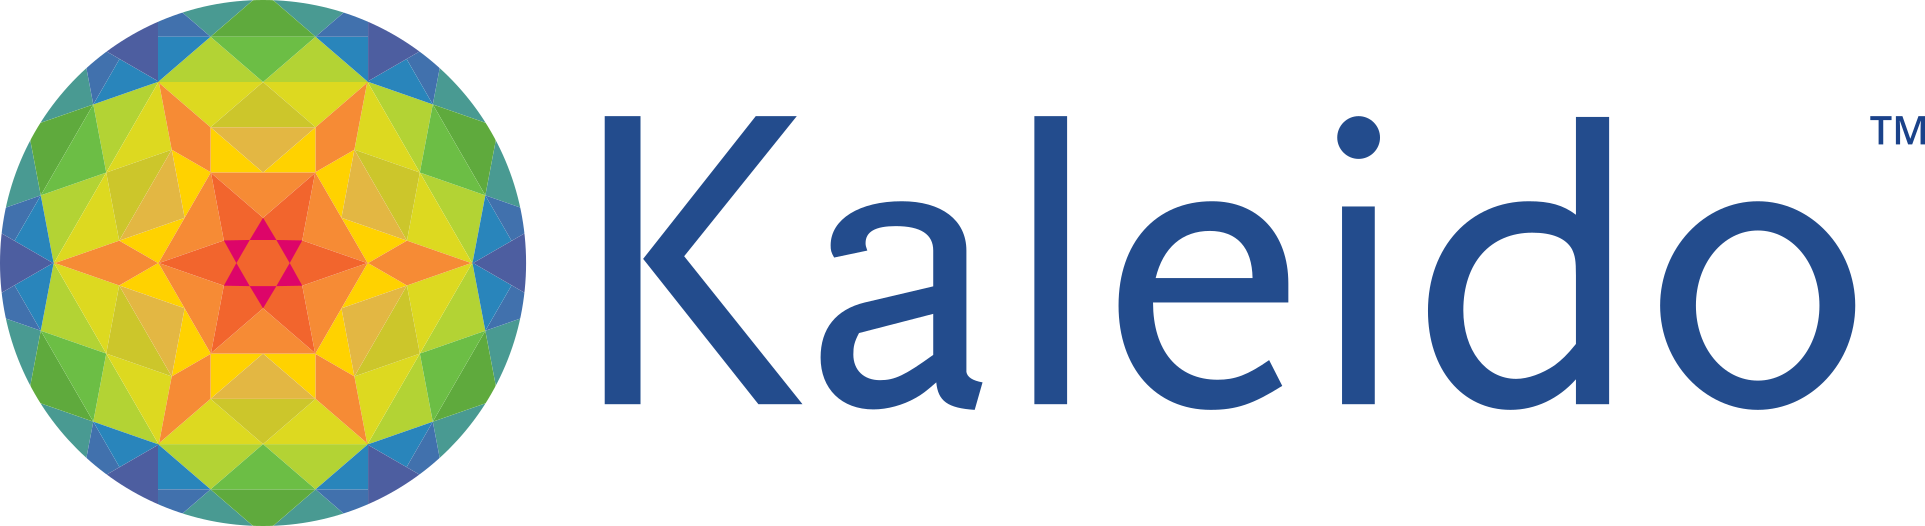 Kaleido-Blue-Transparent